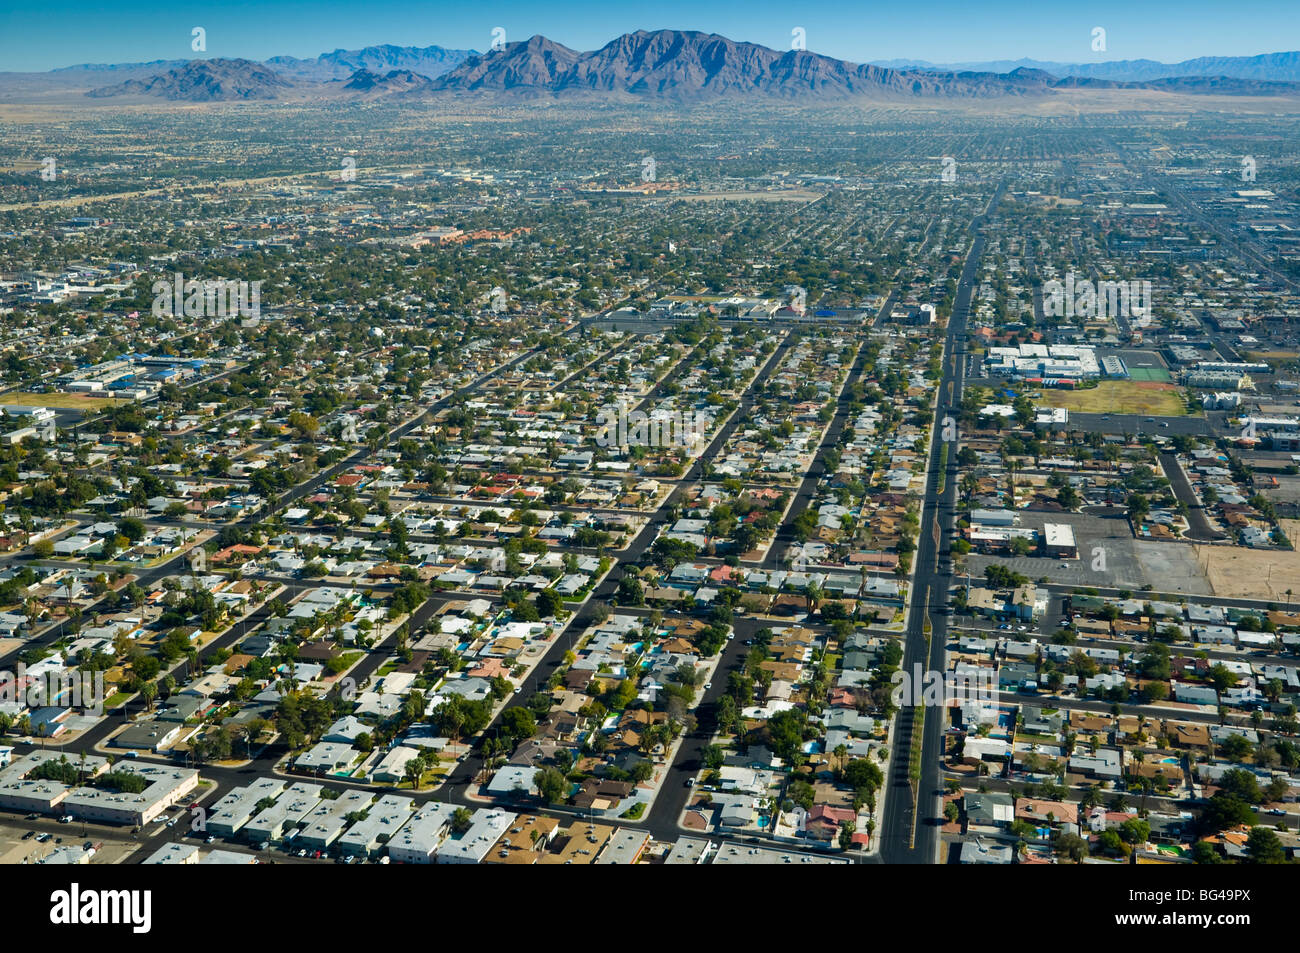 Stock Photo Usa Nevada Las Vegas Suburbia 27140370